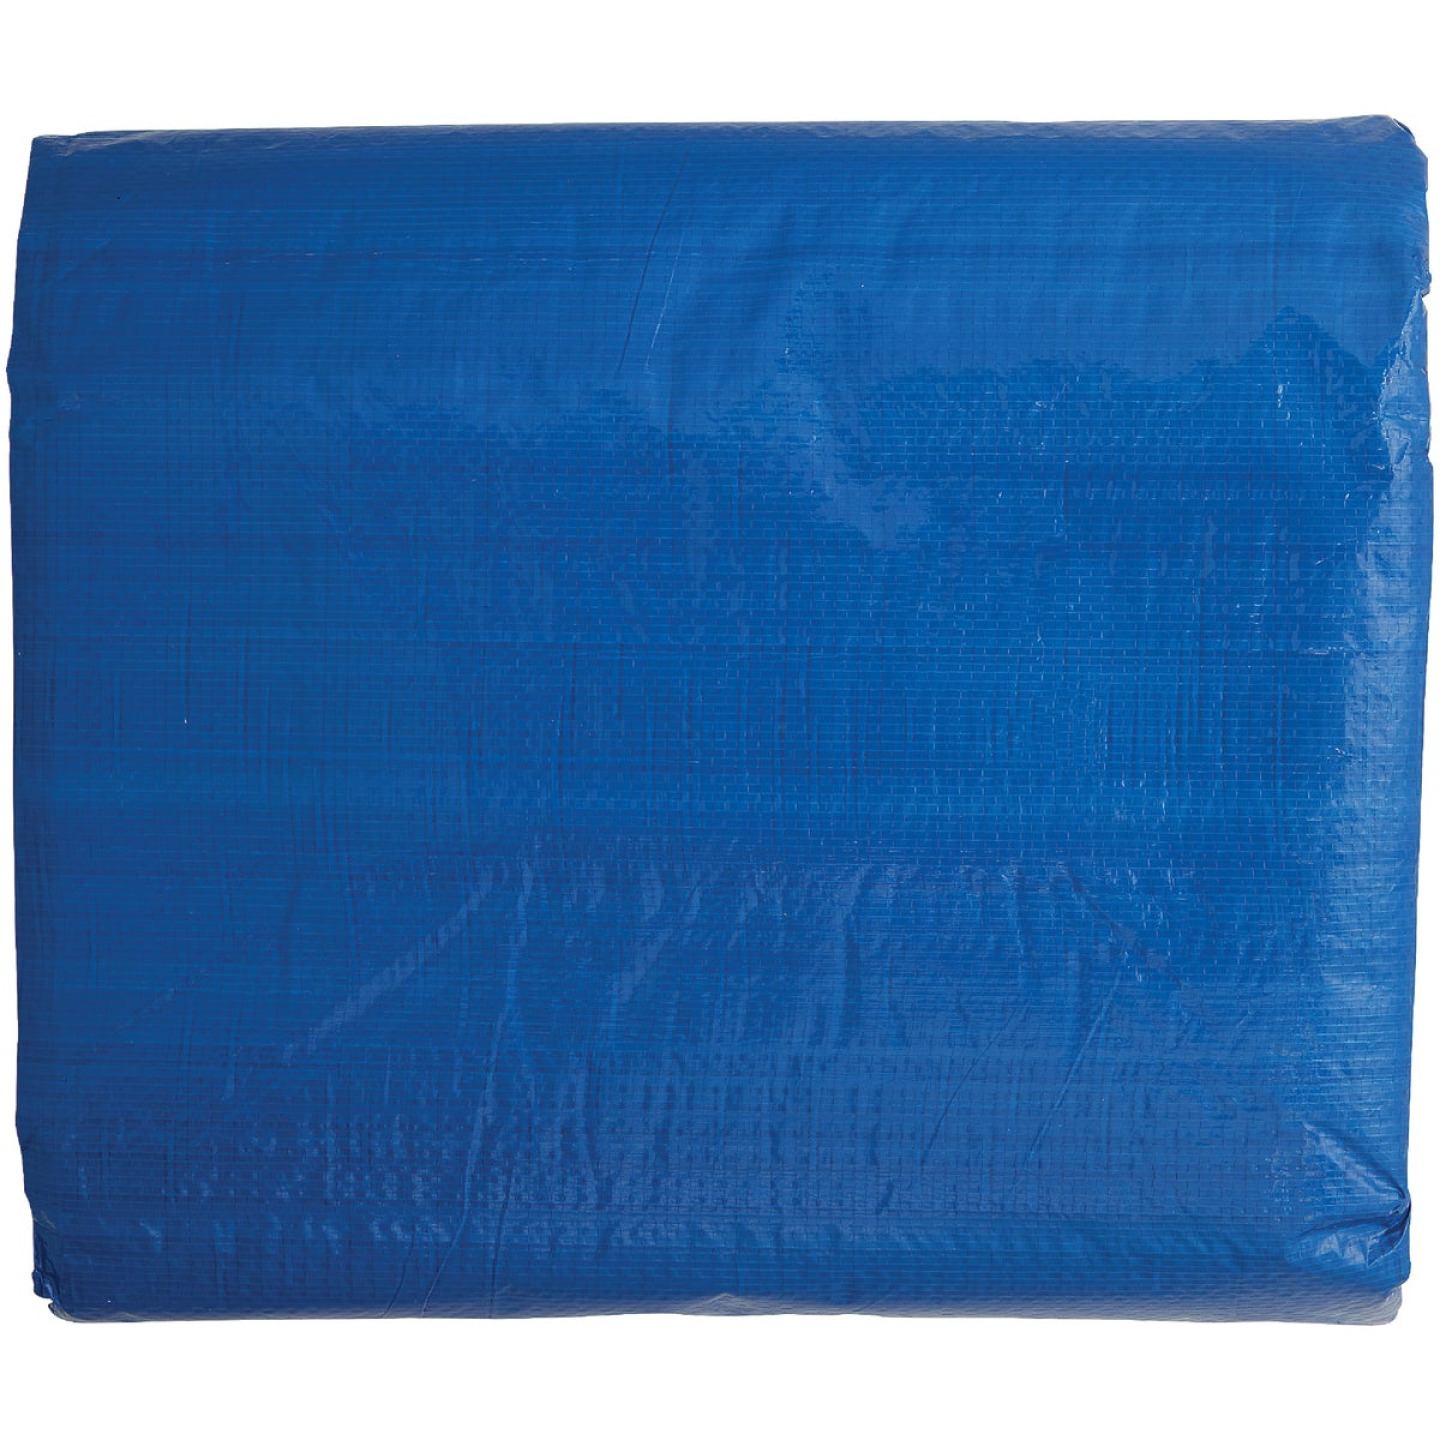 Do it Best Blue Woven 18 Ft. x 24 Ft. Medium Duty Poly Tarp Image 3